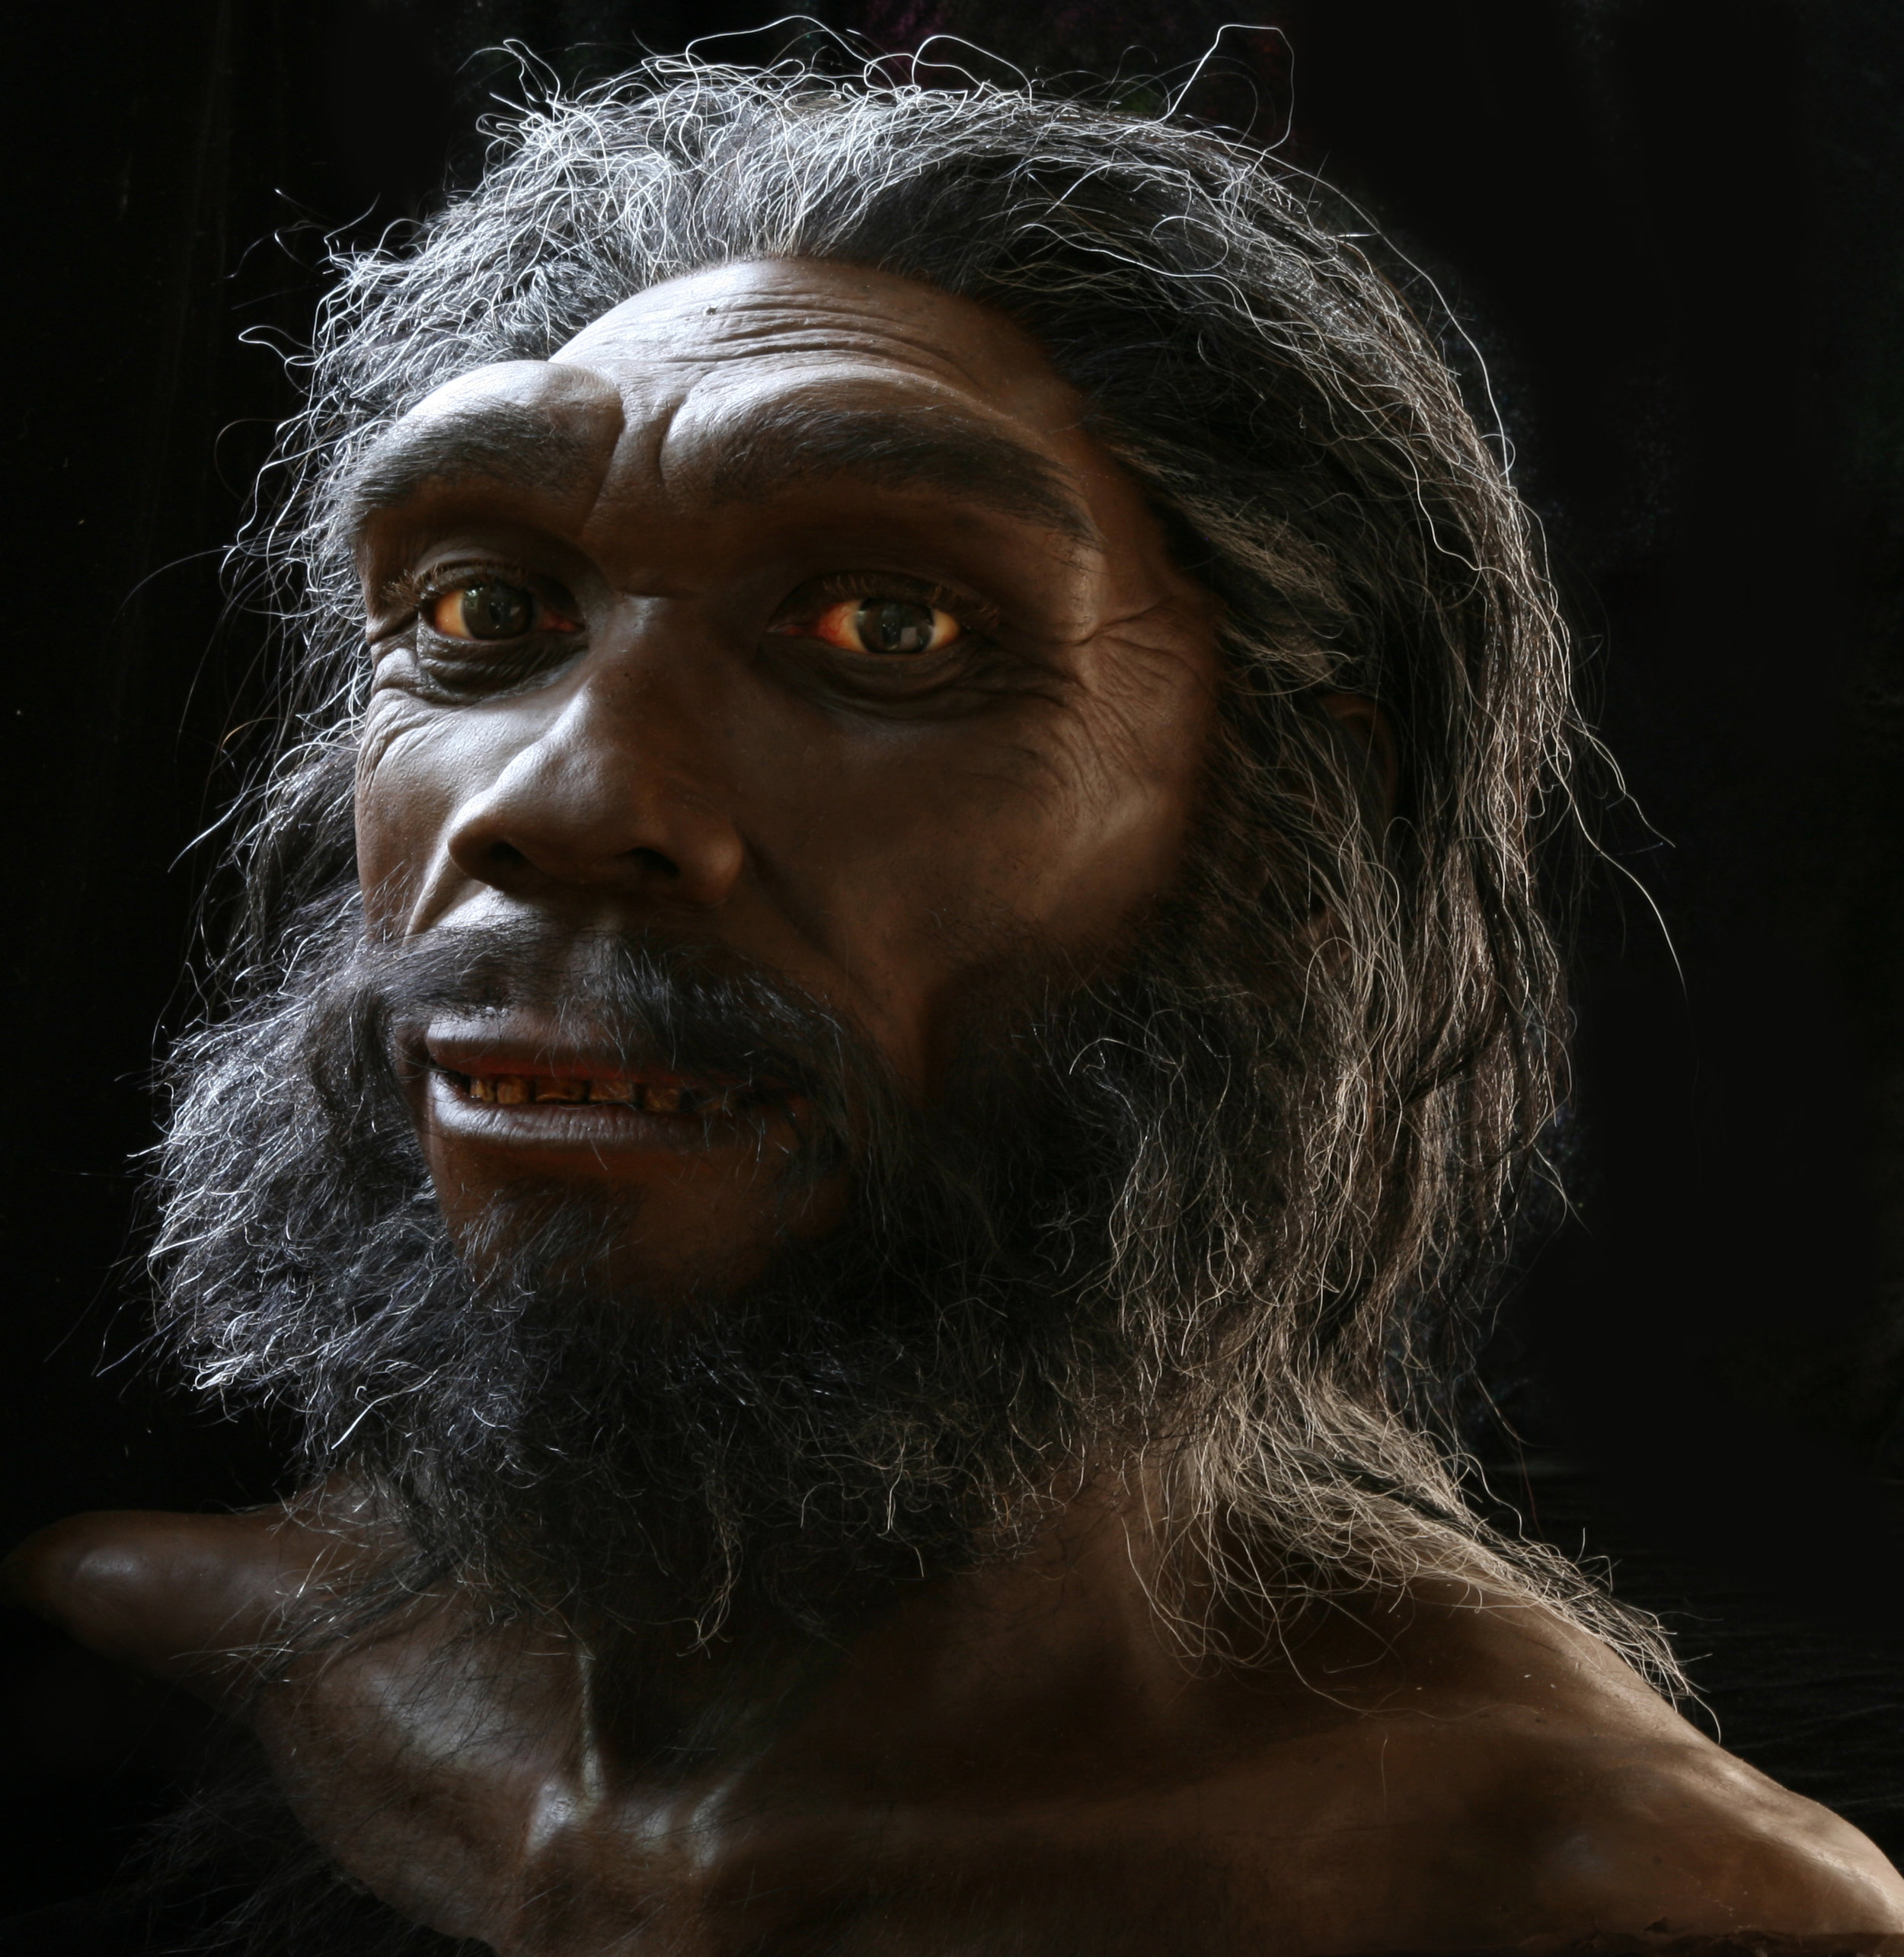 H. heidelbergensis  based on the Kabwe skull. On exhibit in the Smithsonian's Hall of Human Origins.